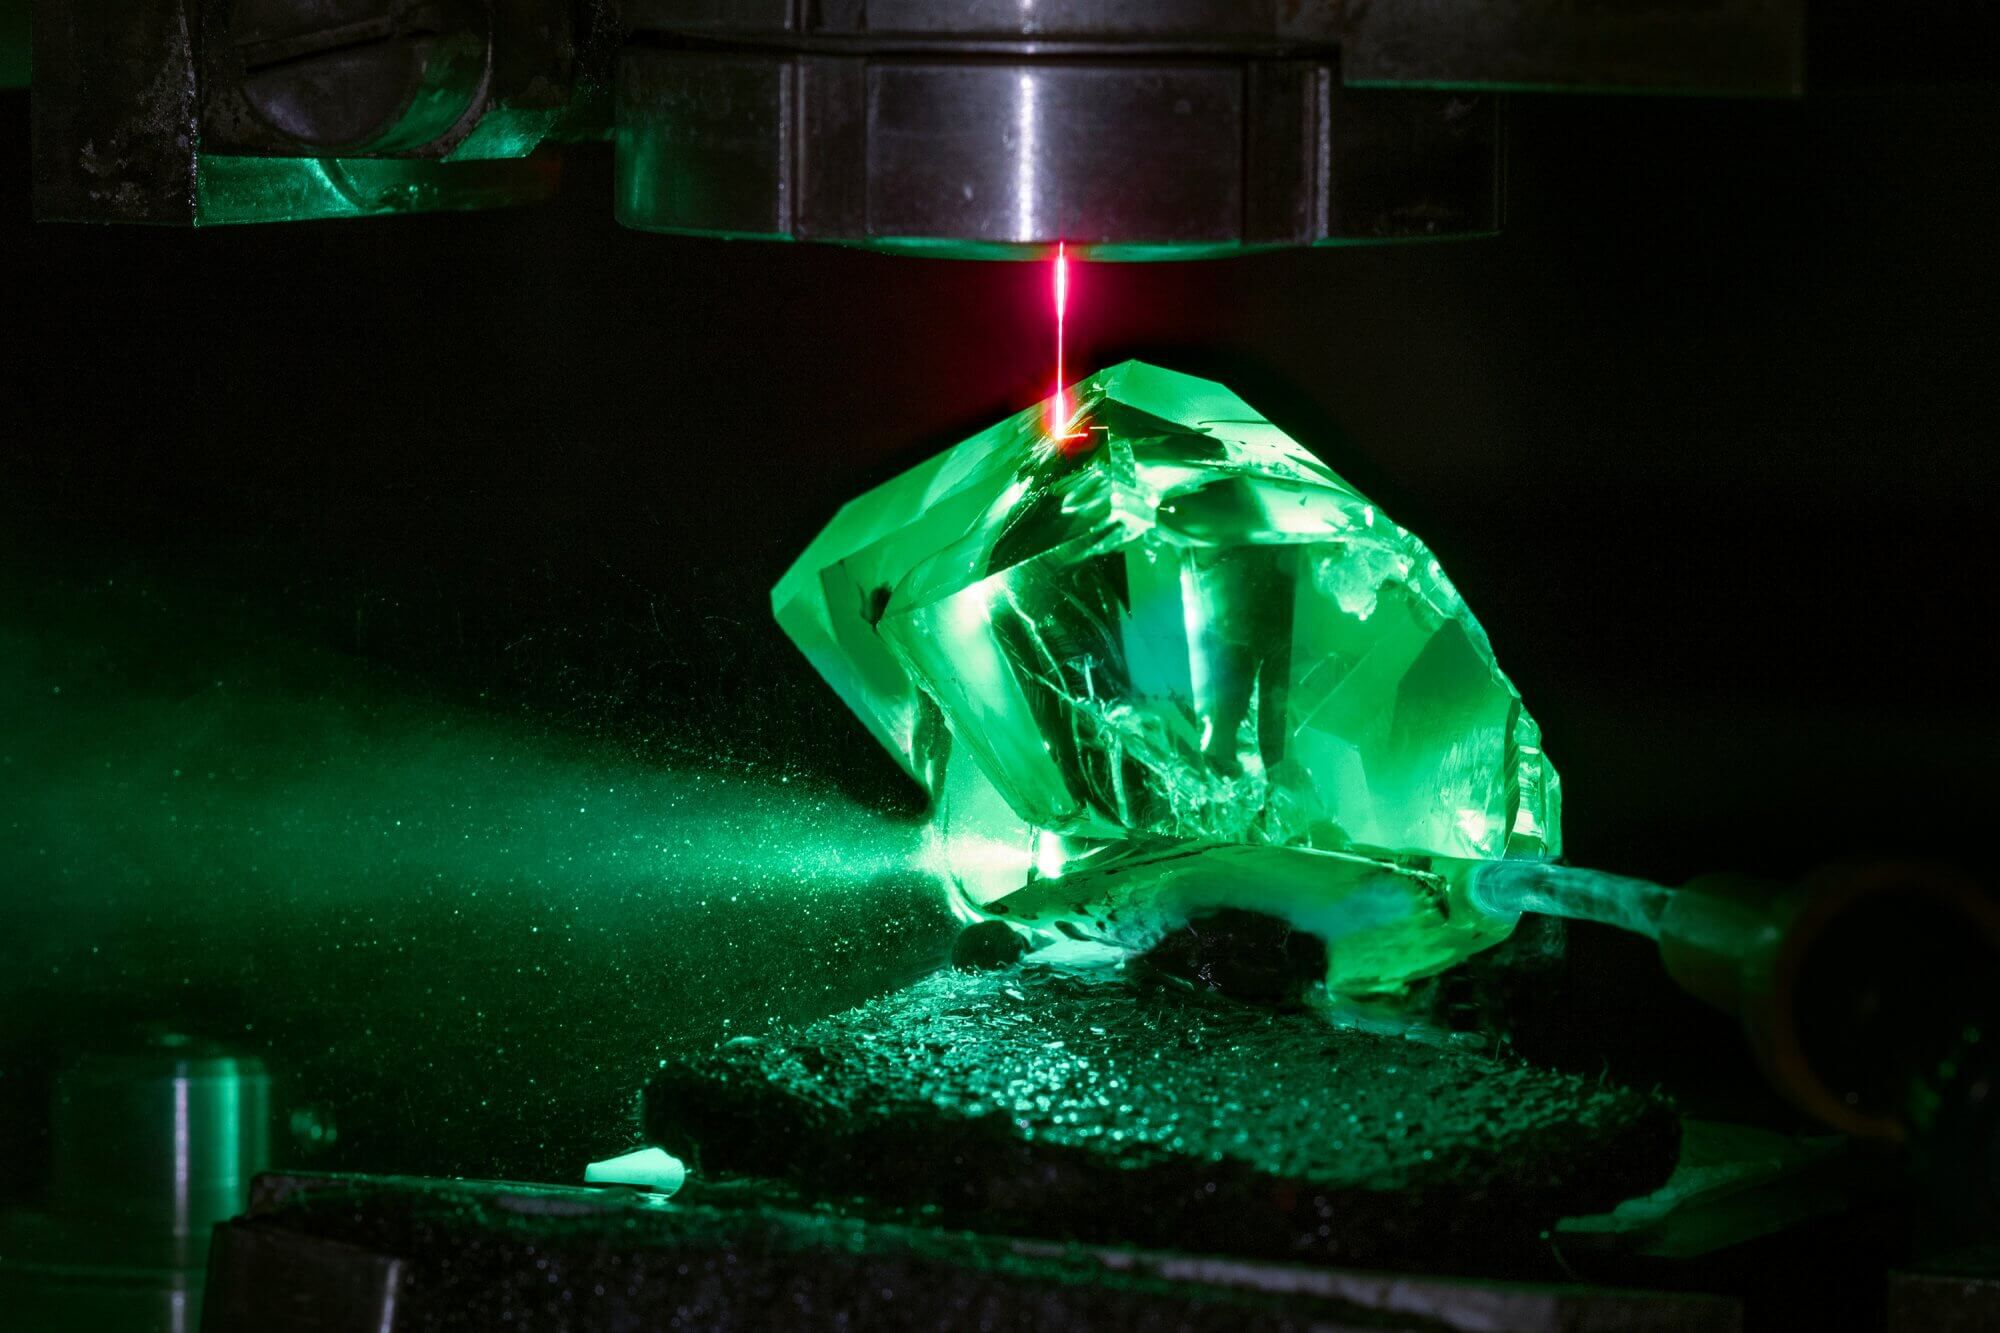 The Graff Lesedi La Rona rough stone being cut by lasers